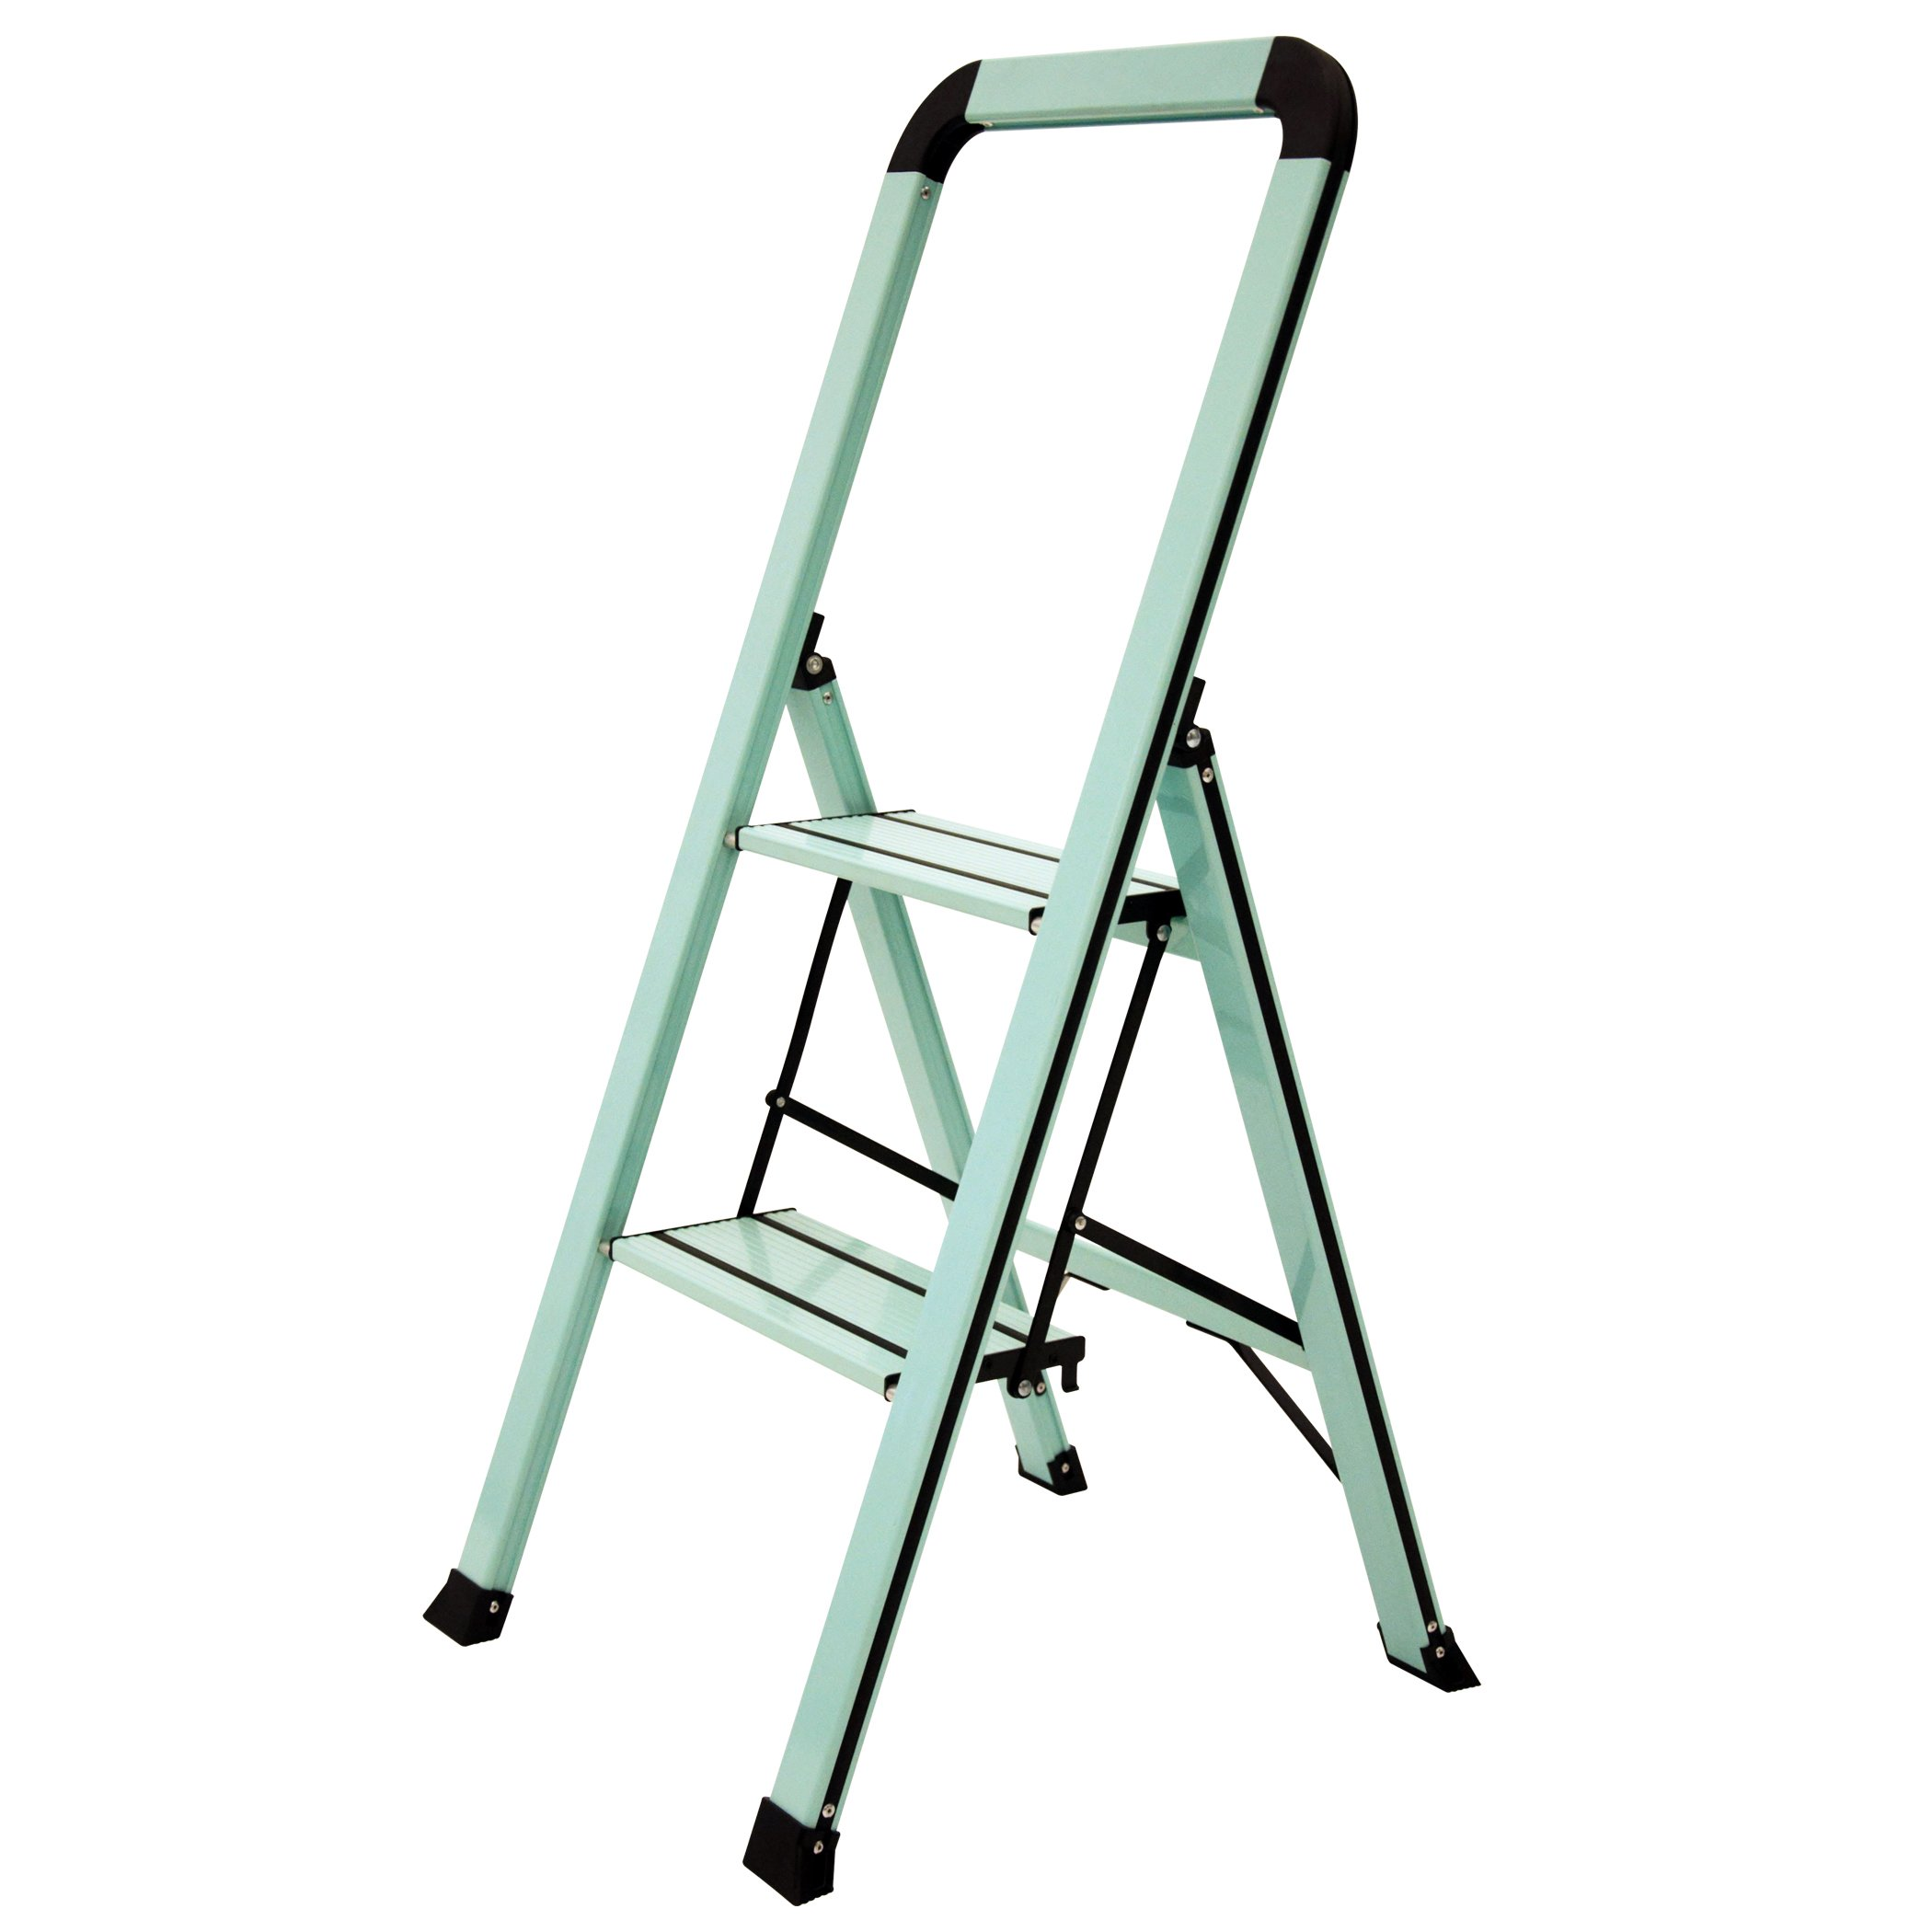 Ascent ADS2-001-TL Series Aluminum 2 Designer Step Stool, Teal by Ascent